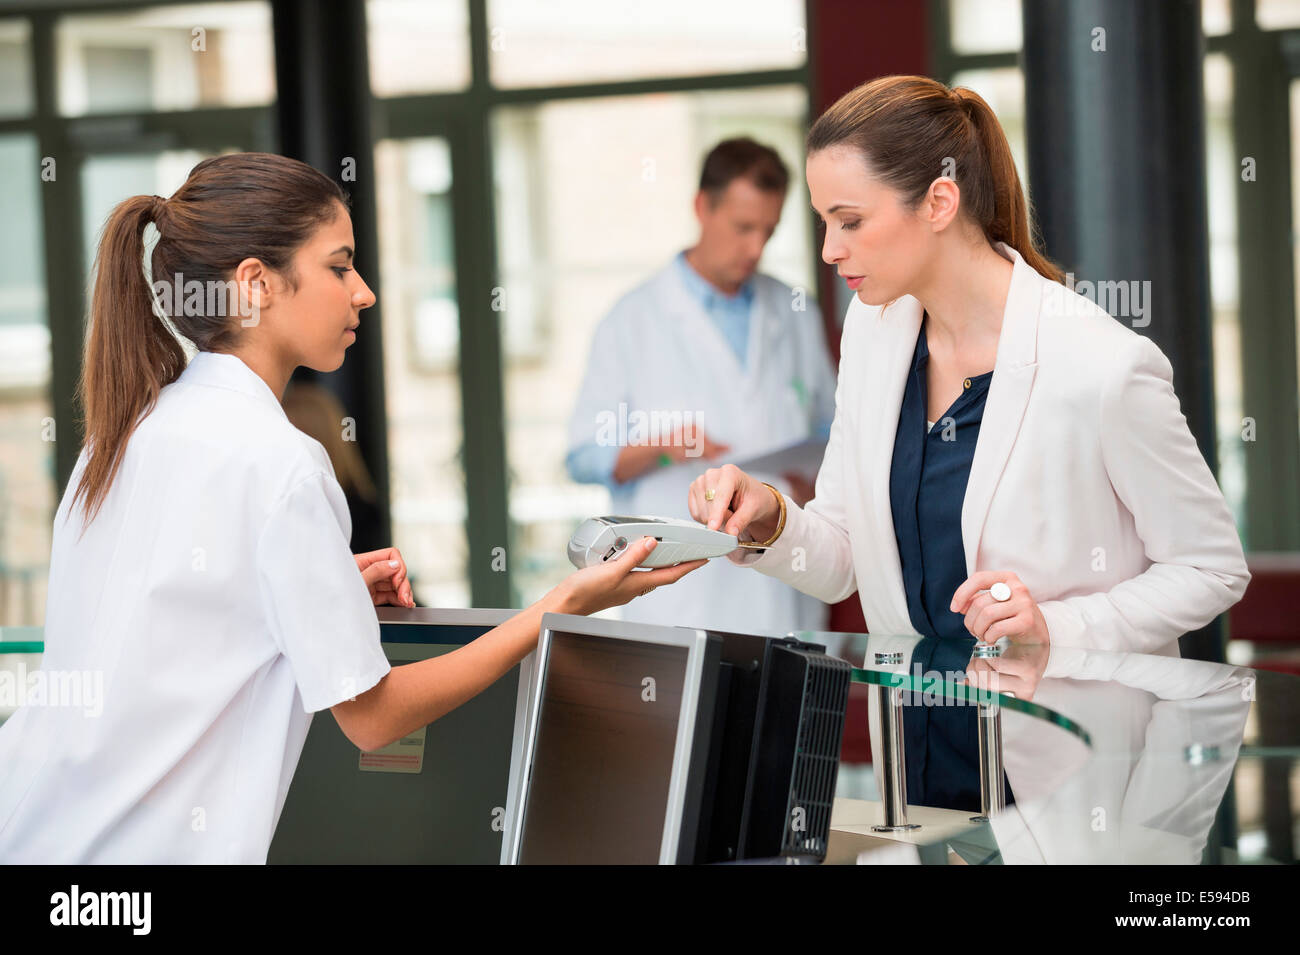 Female doctor making payment with credit card at hospital reception desk - Stock Image